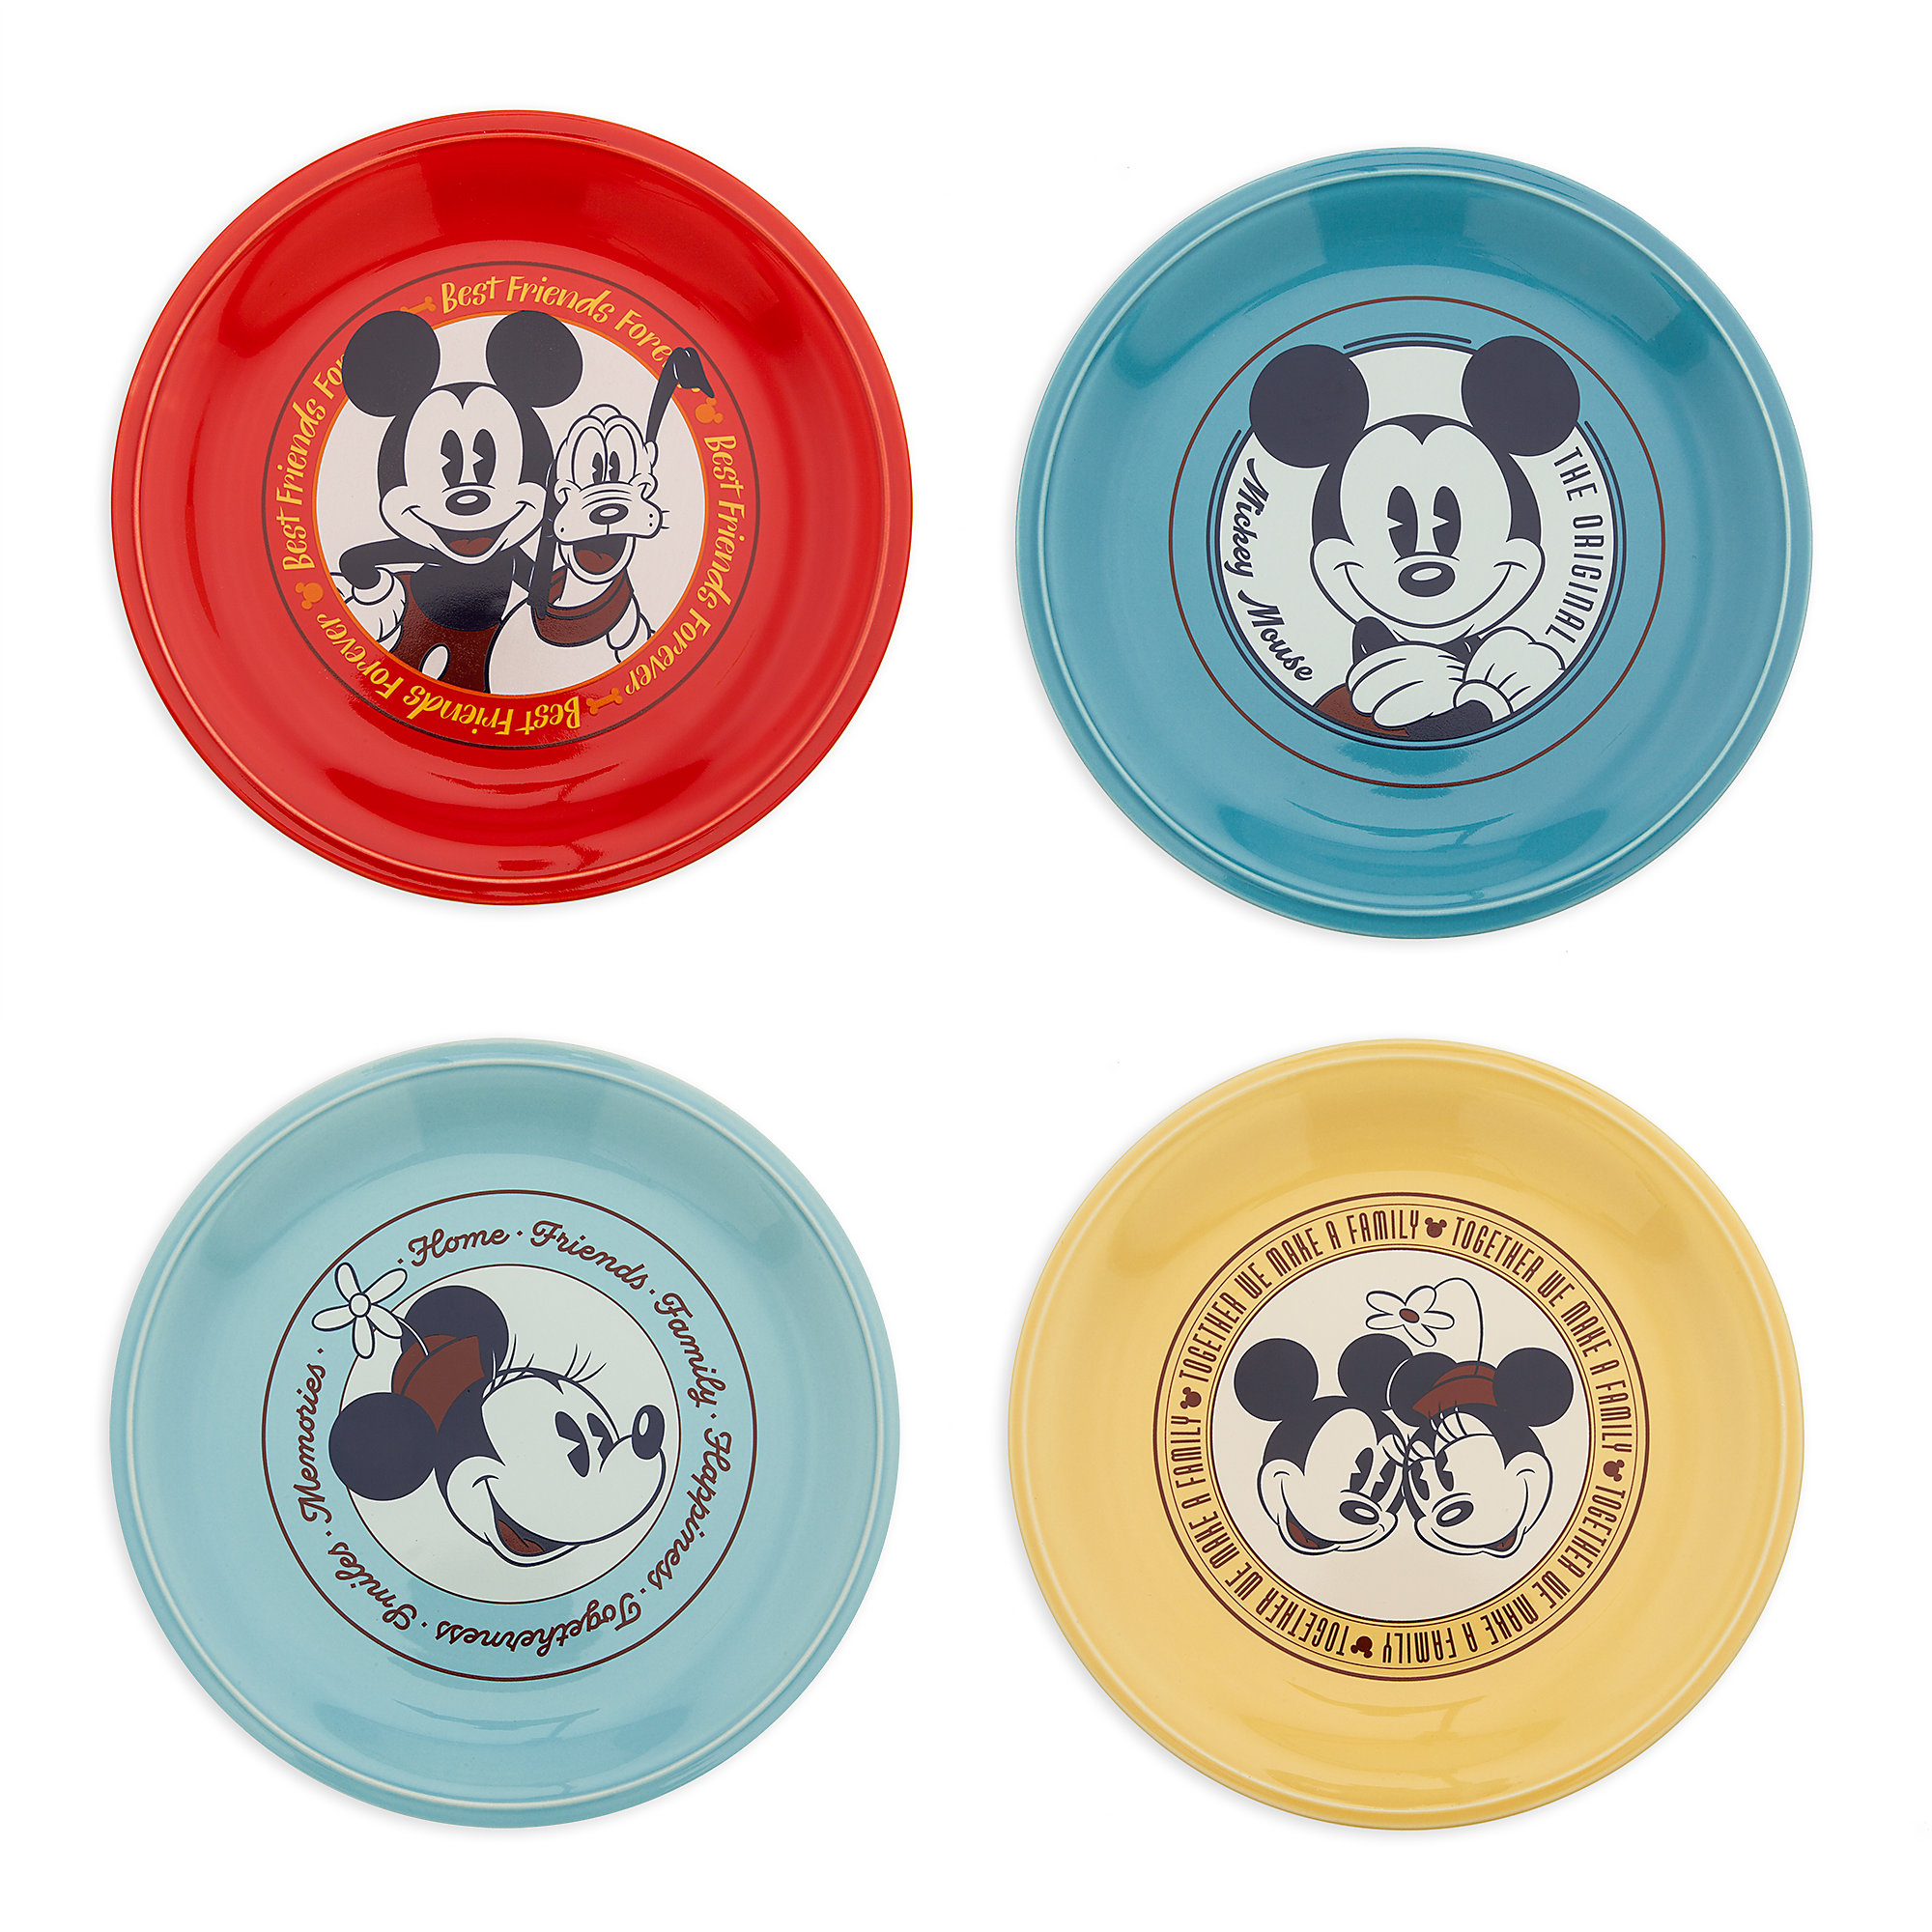 Mickey Mouse and Friends Ceramic Plate Set - 4 pc  sc 1 st  shopDisney & Mickey Mouse and Friends Ceramic Plate Set - 4 pc | shopDisney